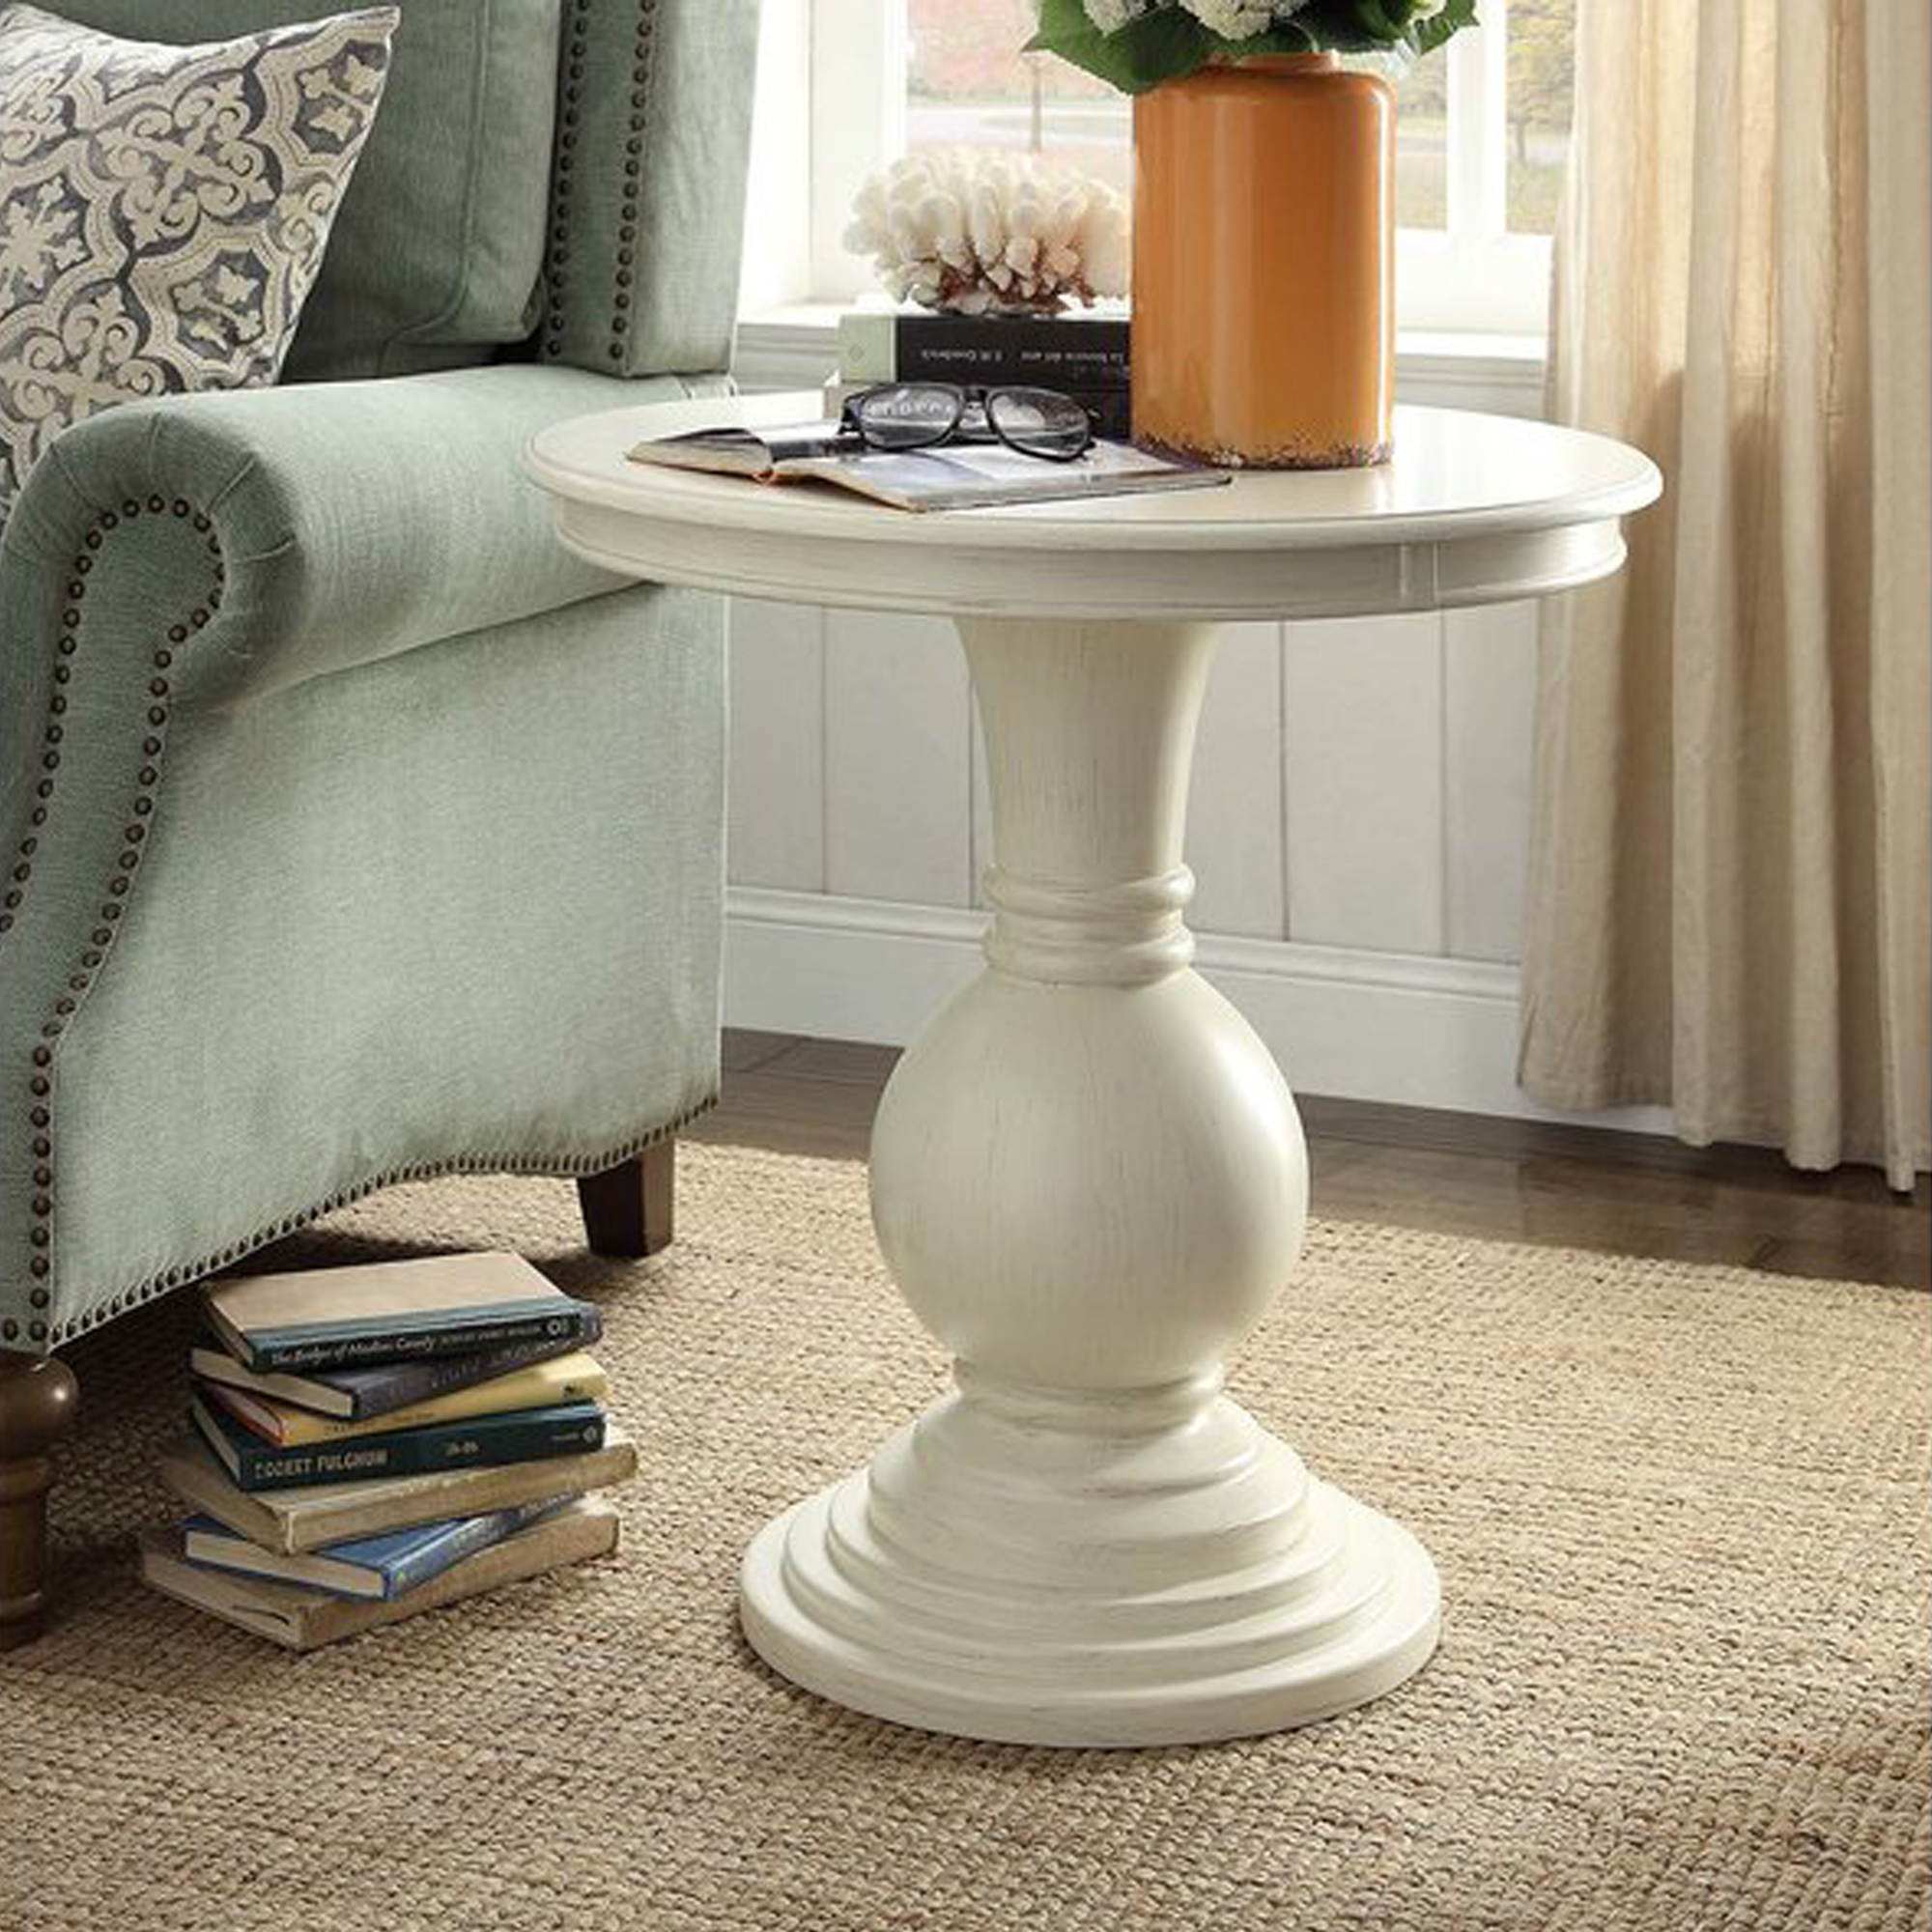 tall pedestal accent table design ideas round end tables side lamp for wrought iron small black distressed off white best accentuate your living painting wood cabinets oval marble